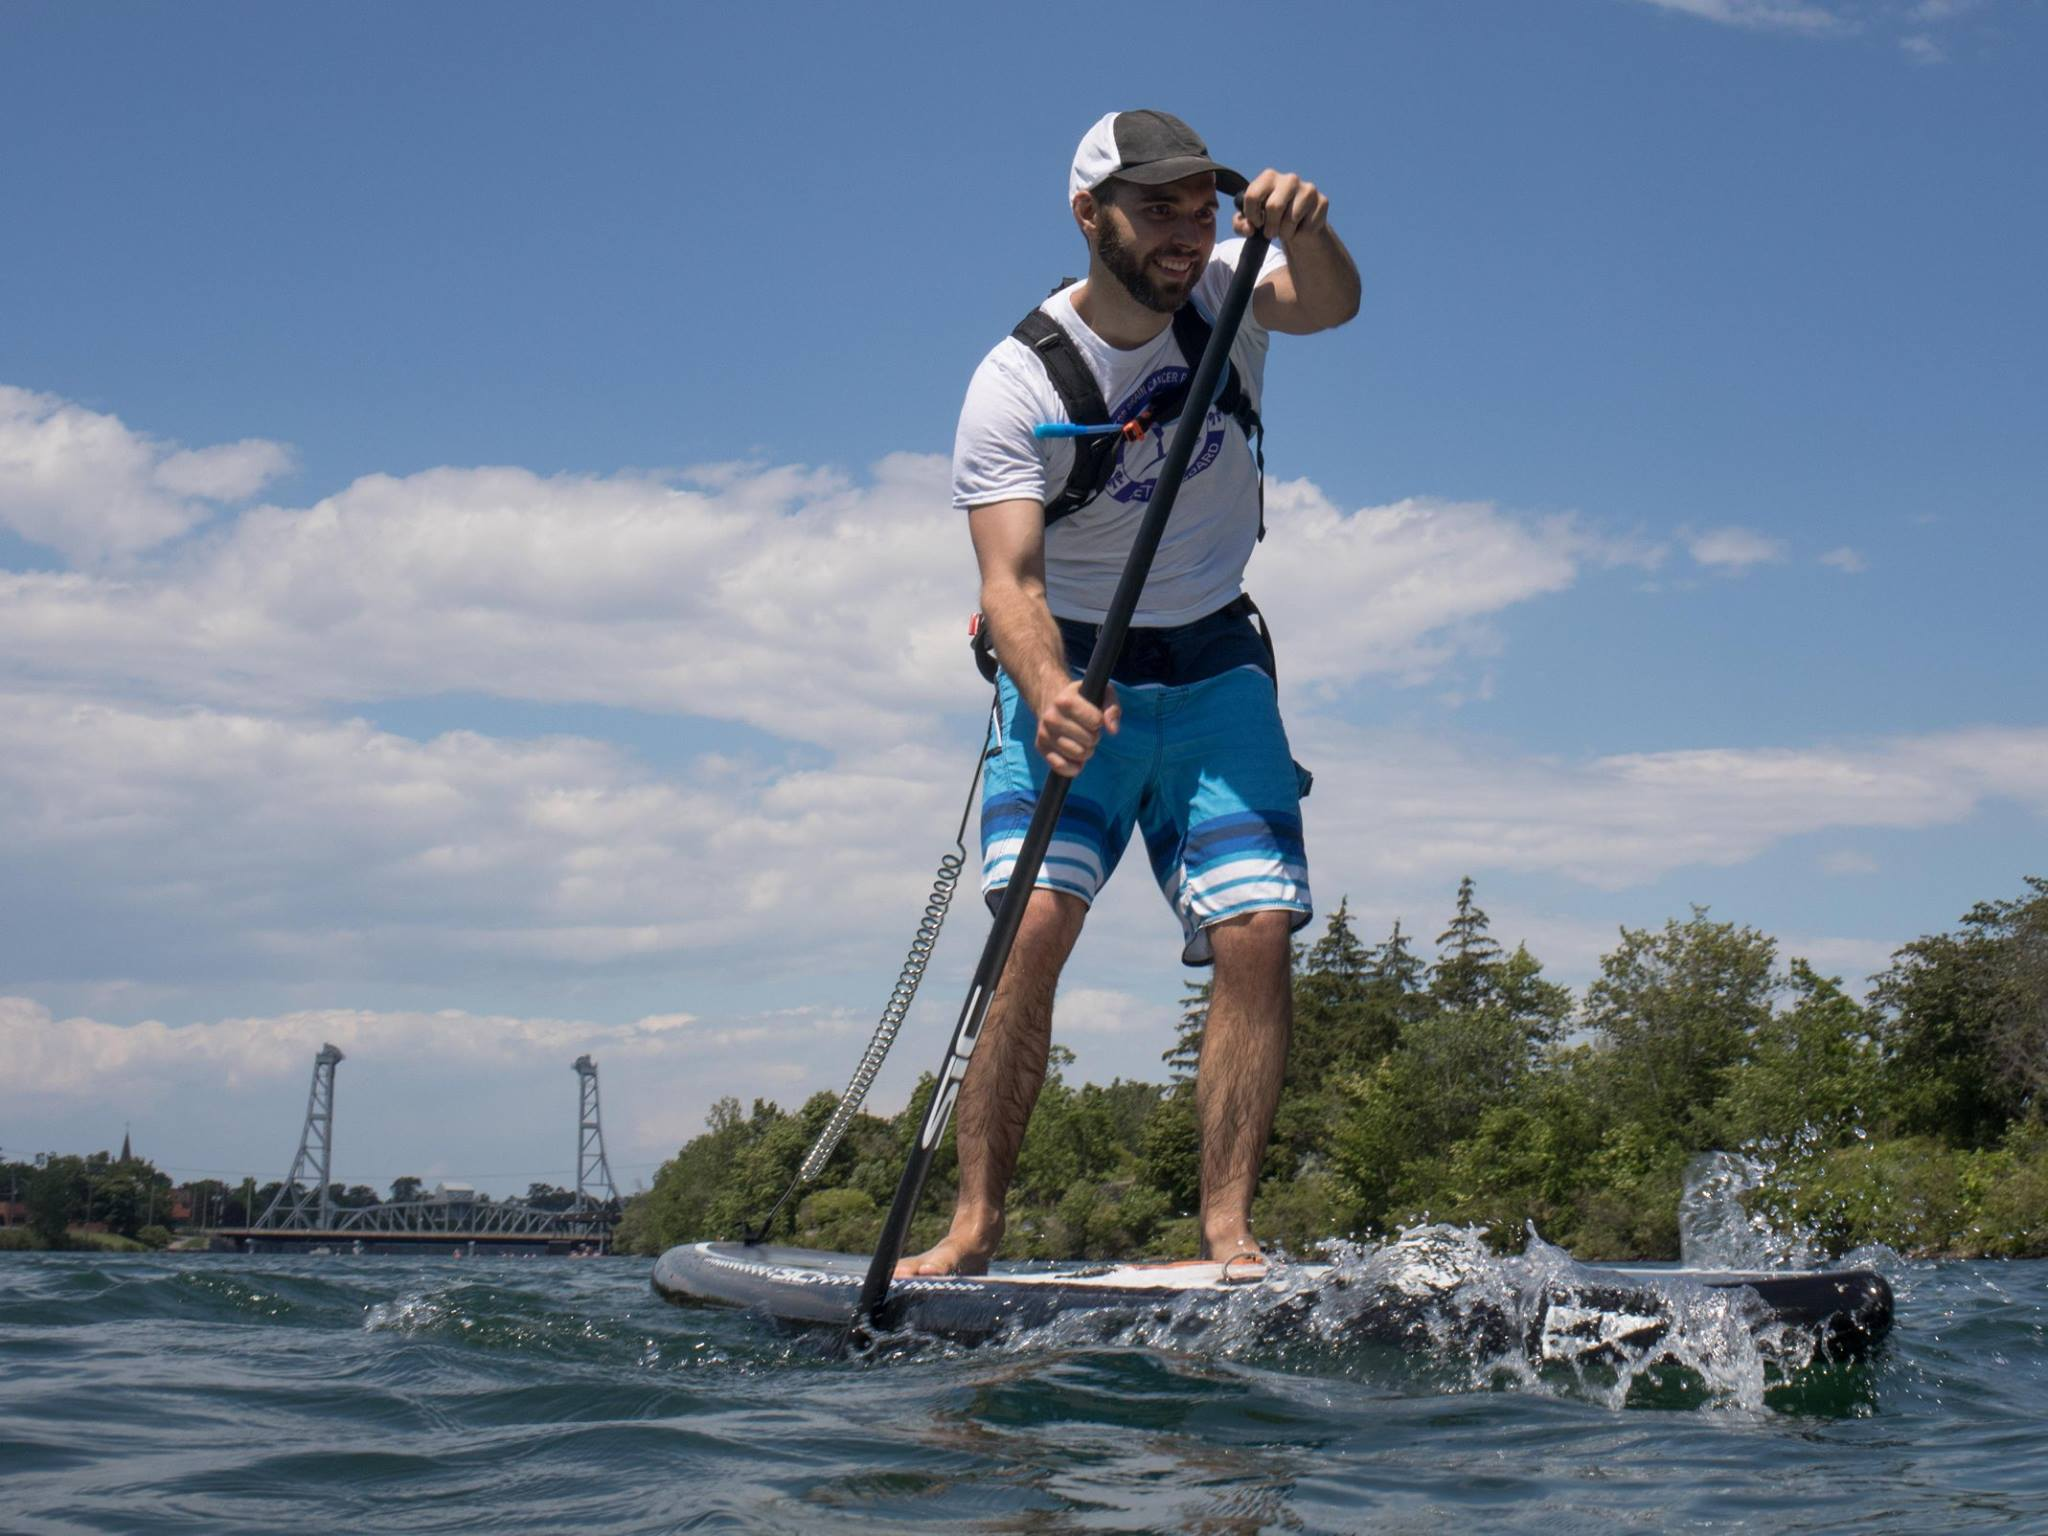 Maddi Leblanc On Board Standup Paddleboarding Fundraiser Canada by Lucas Murnaghan